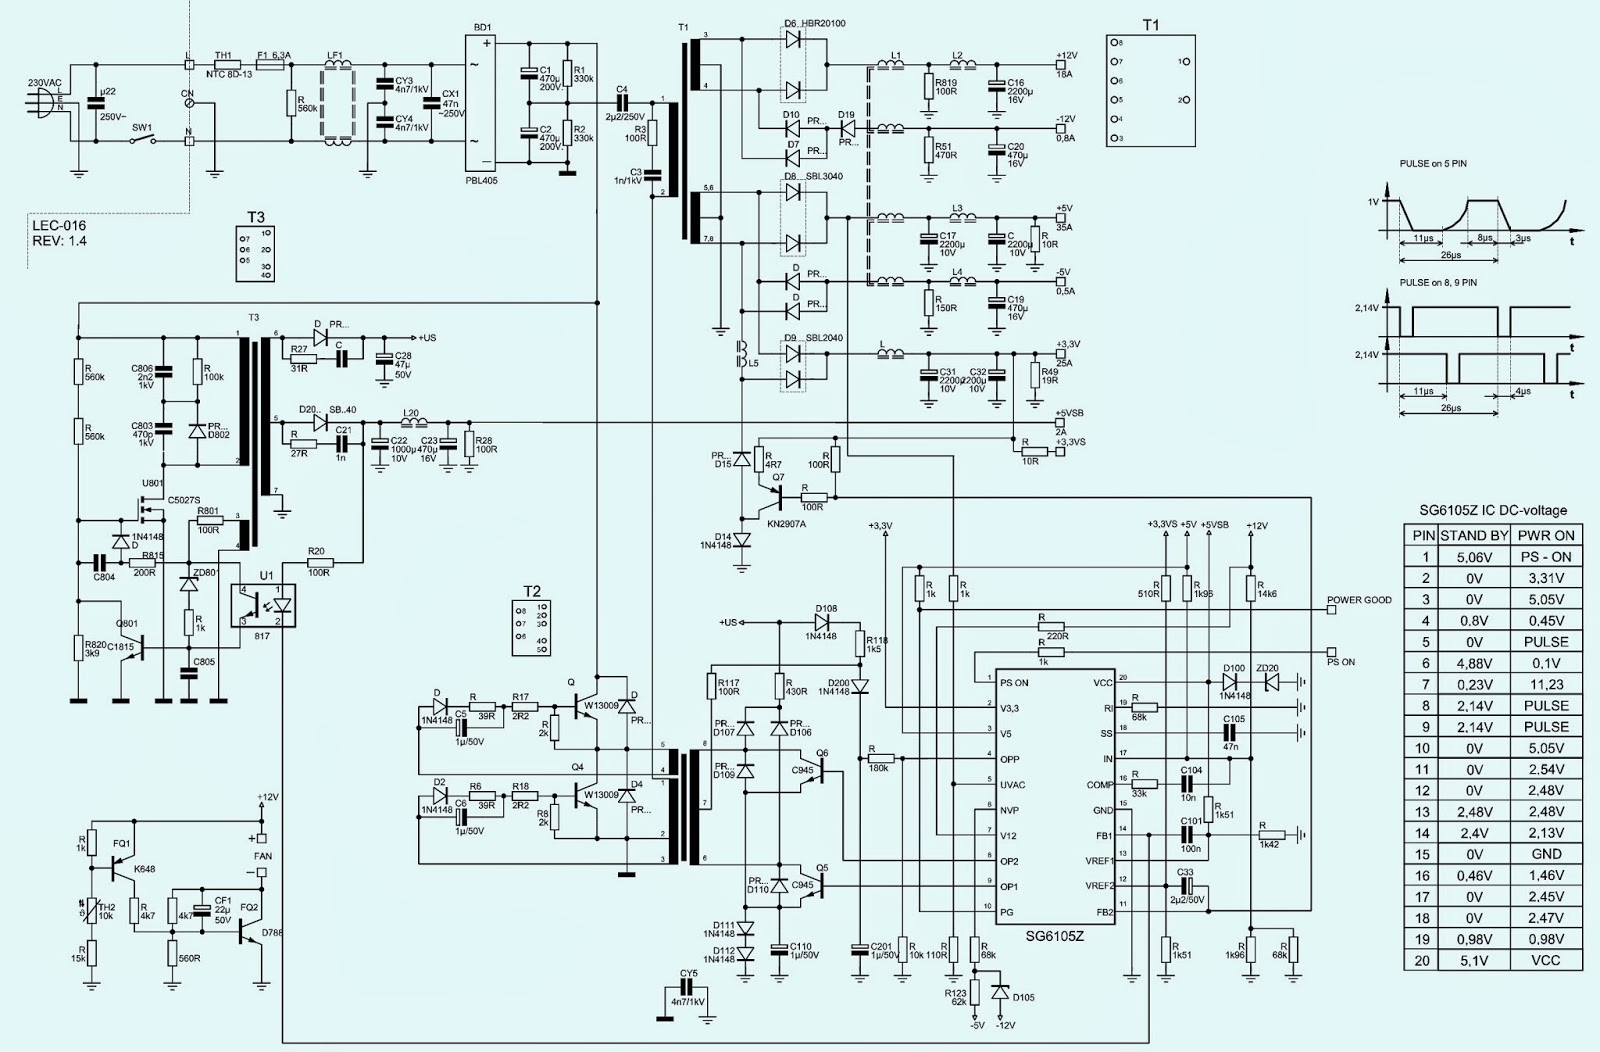 Kob ap xa w atx power supply schematic